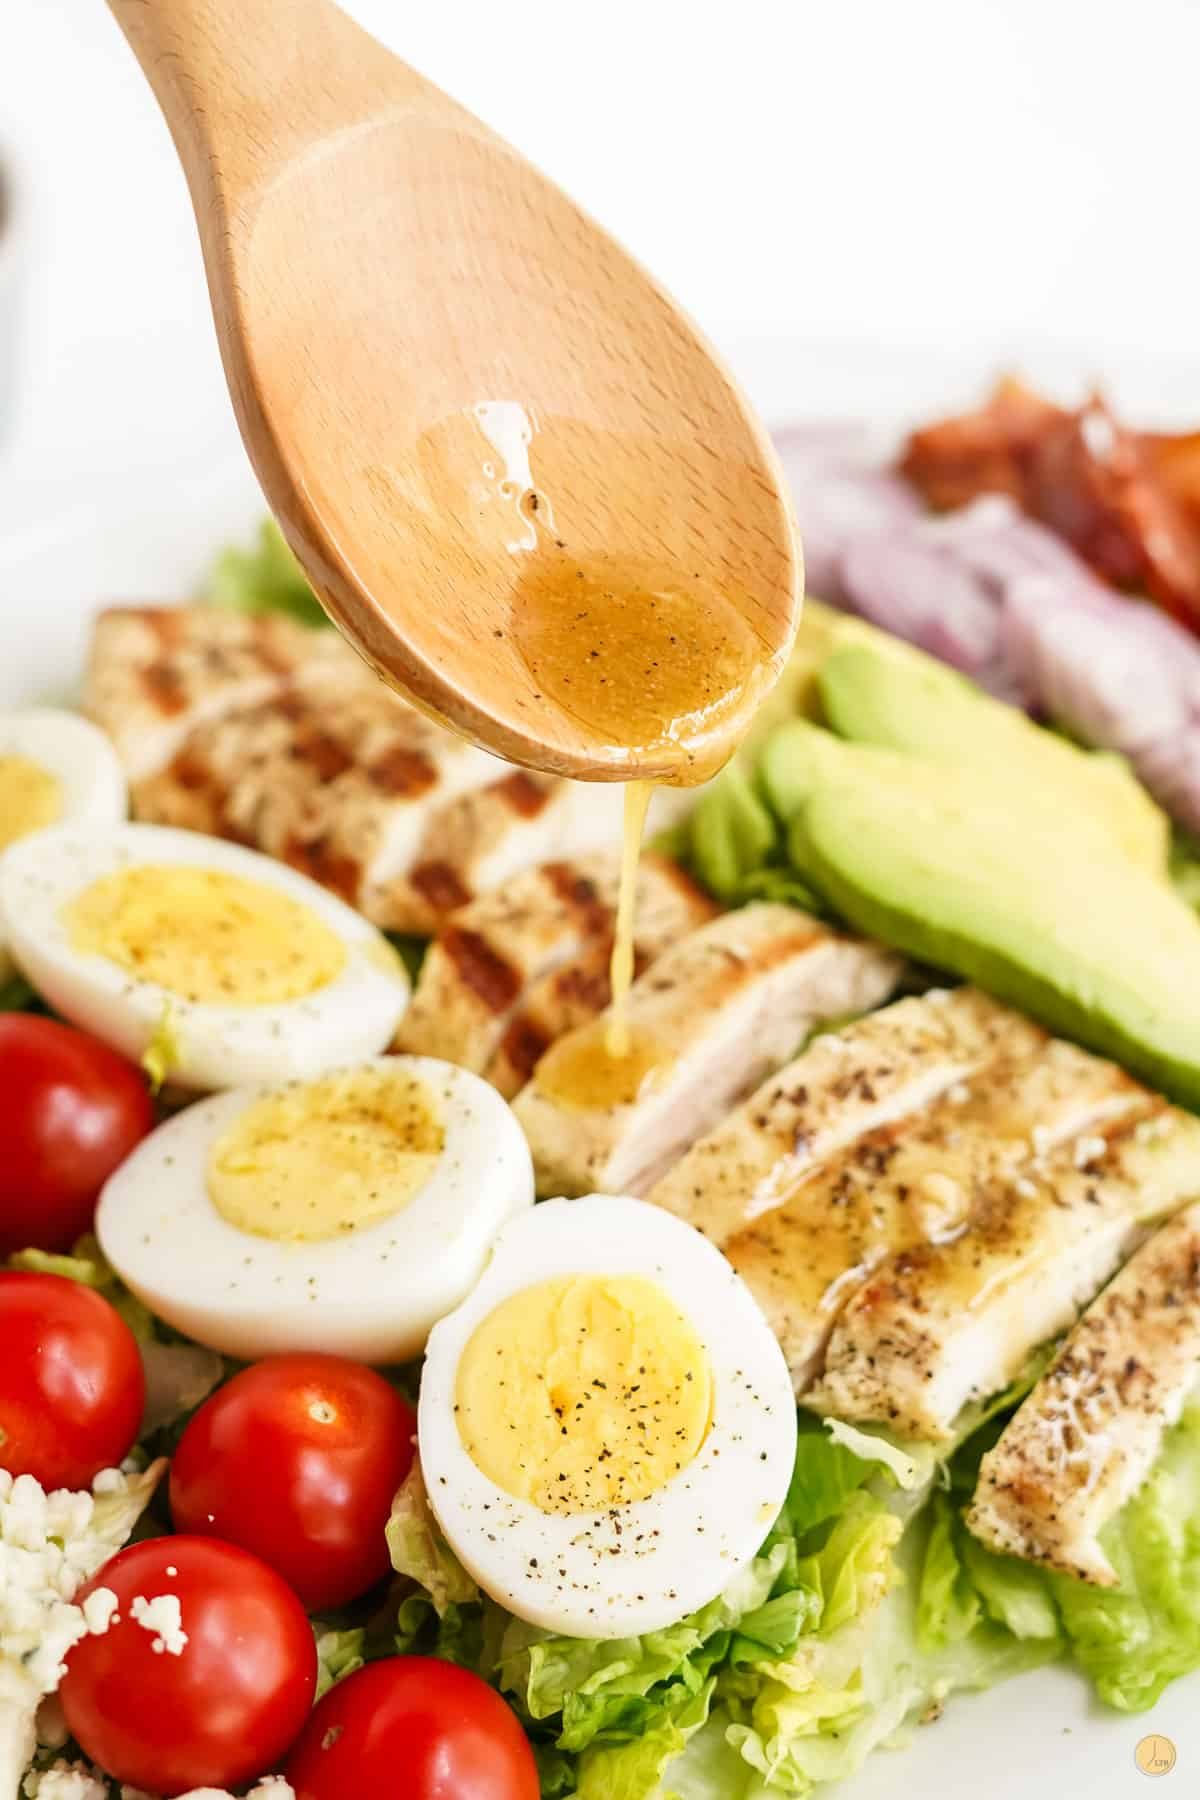 spoon drizzling salad dressing on eggs